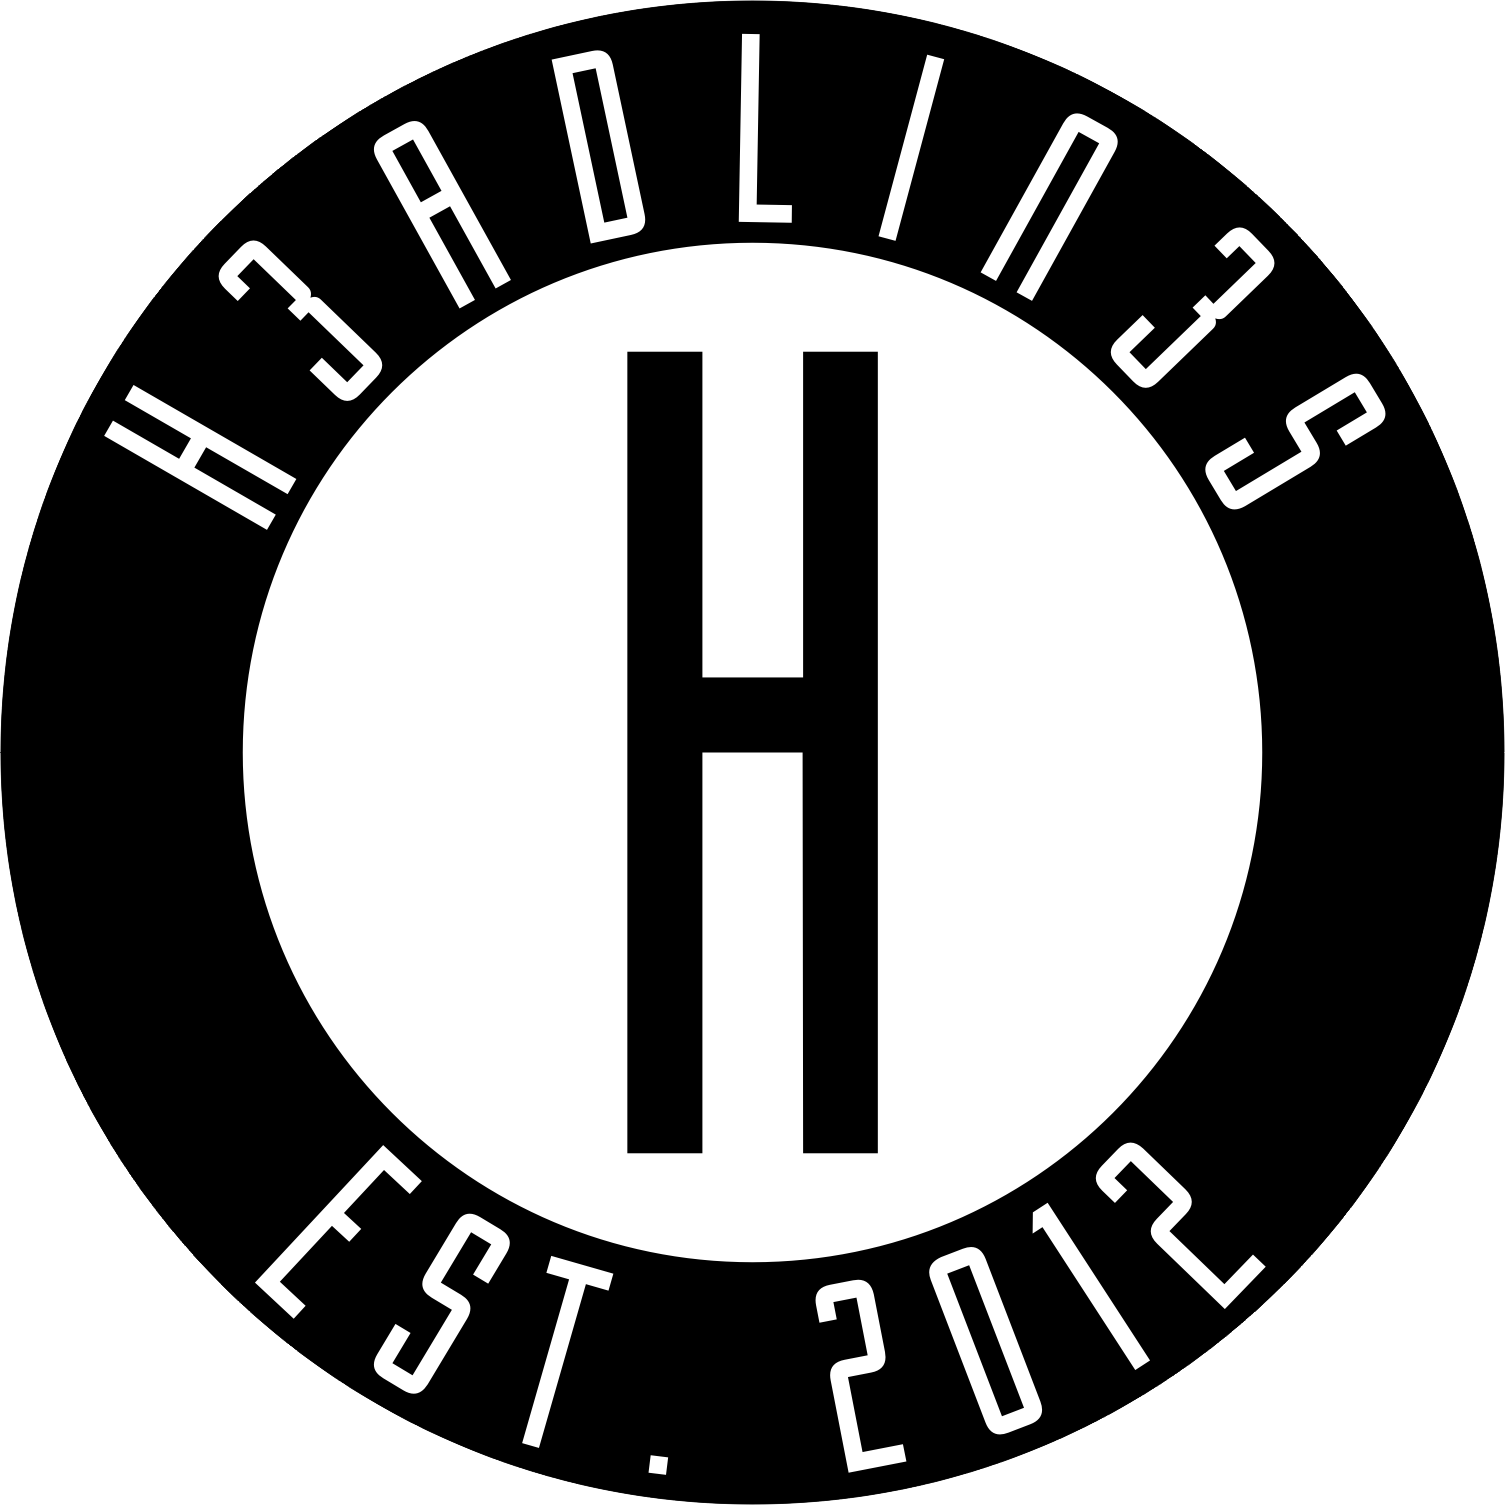 Headlines apparel make headlines skillshare projects bringing the retro back to street fashion headlines embodies the philosophy that our clothing is our billboard our vehicle to express ourselves biocorpaavc Gallery